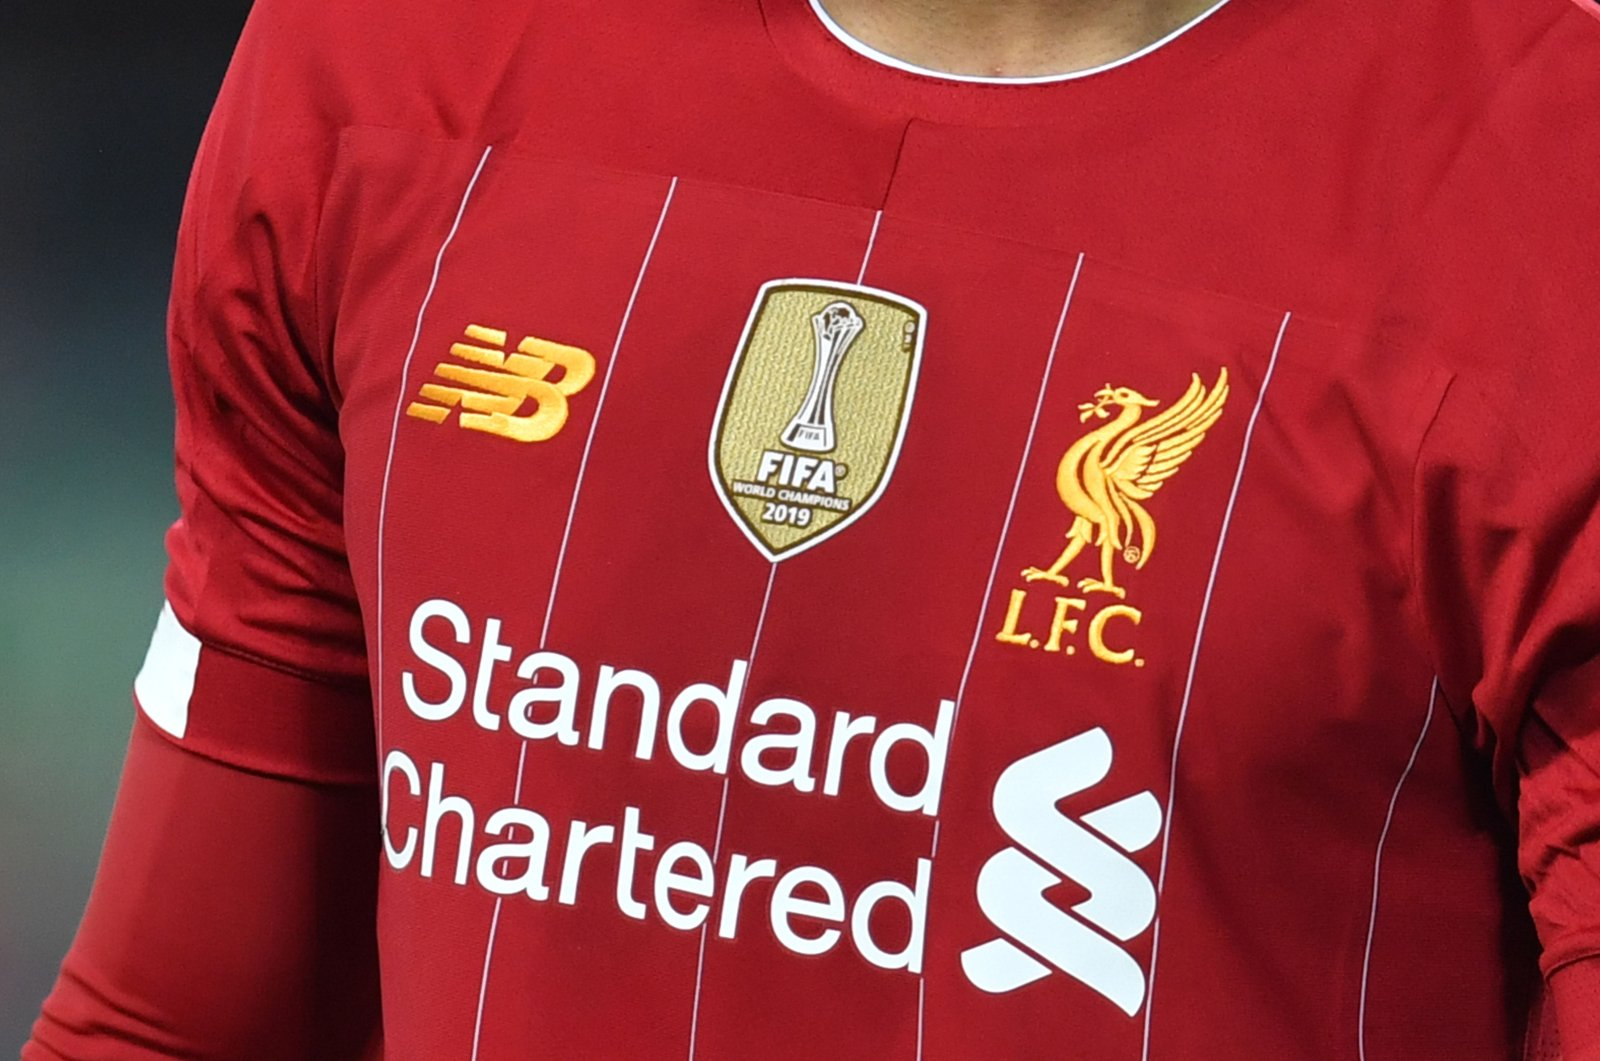 The emblem commemorating Liverpool's FIFA Club World Cup victory is seen on the shirt of defender Joe Gomez, during a Premier League football match, Liverpool, Dec. 29, 2019. (AFP Photo)